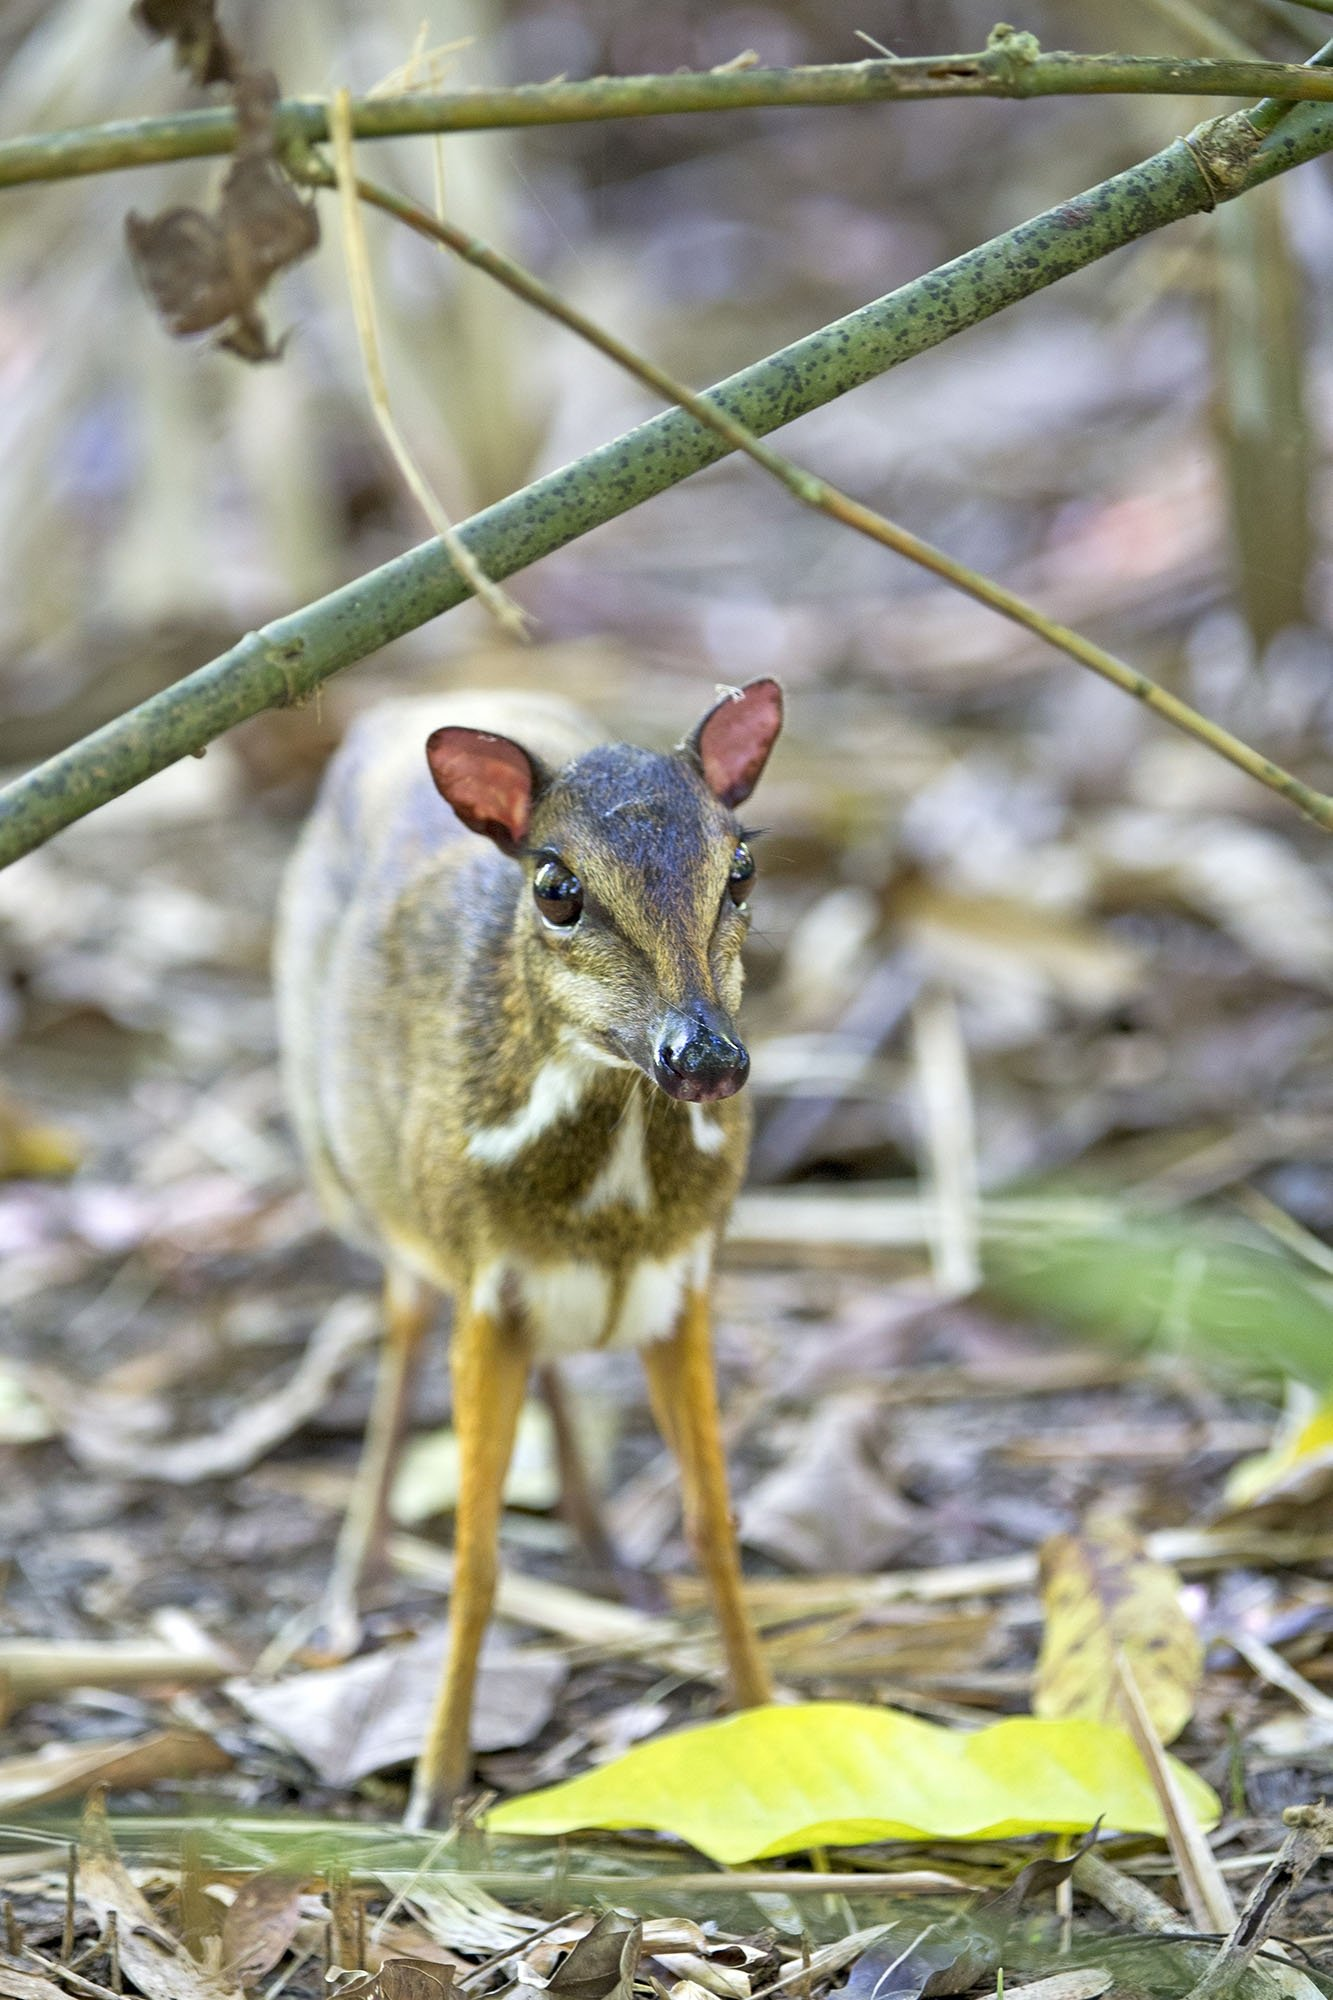 A Chevrotain is seen in the undergrowth in Malaysia. (Getty Images)